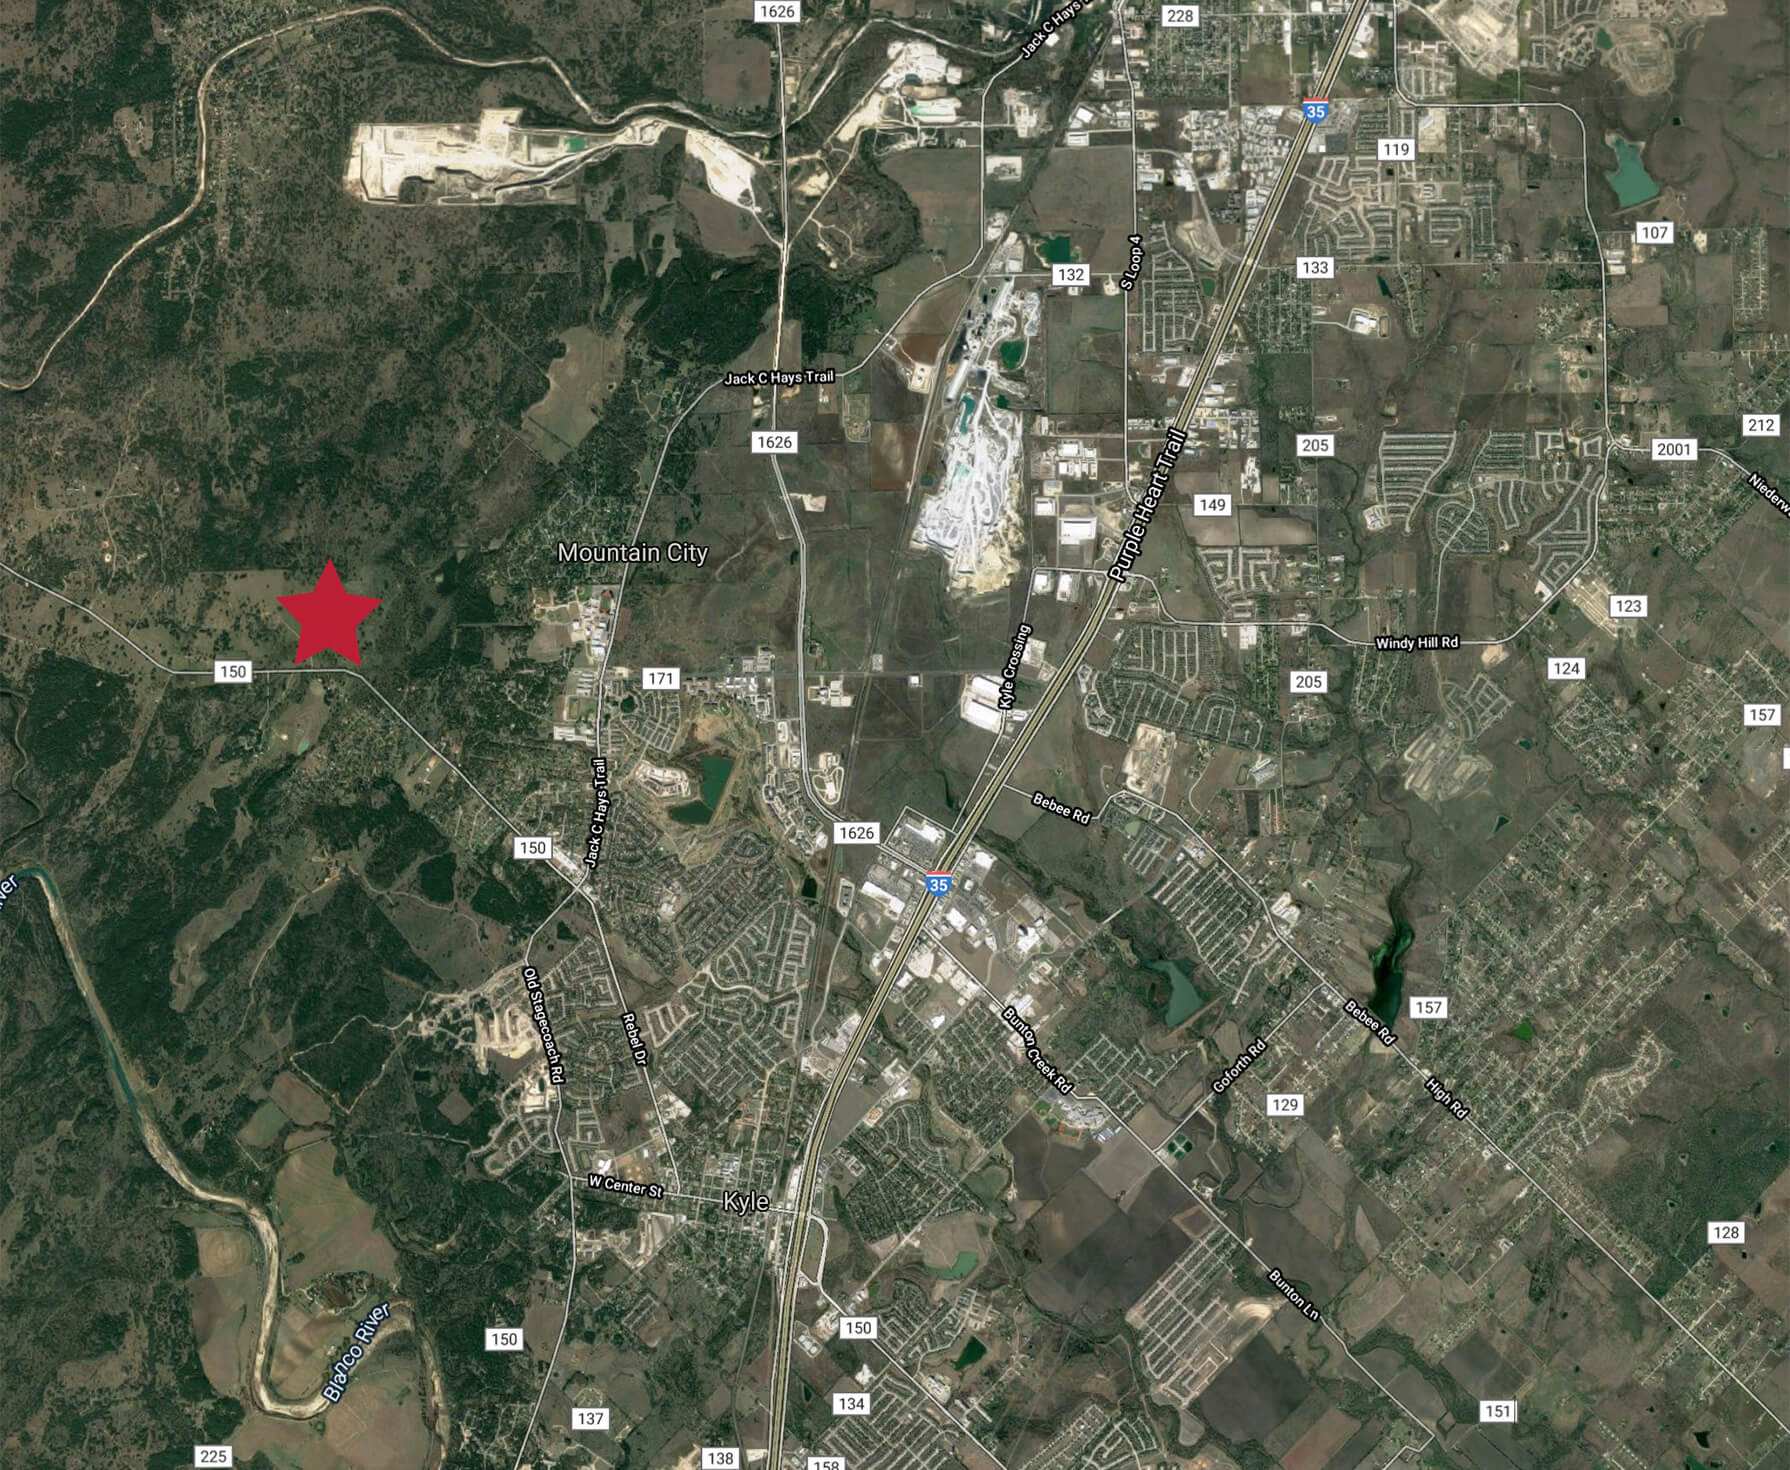 Location Map Image of Kyle, Texas